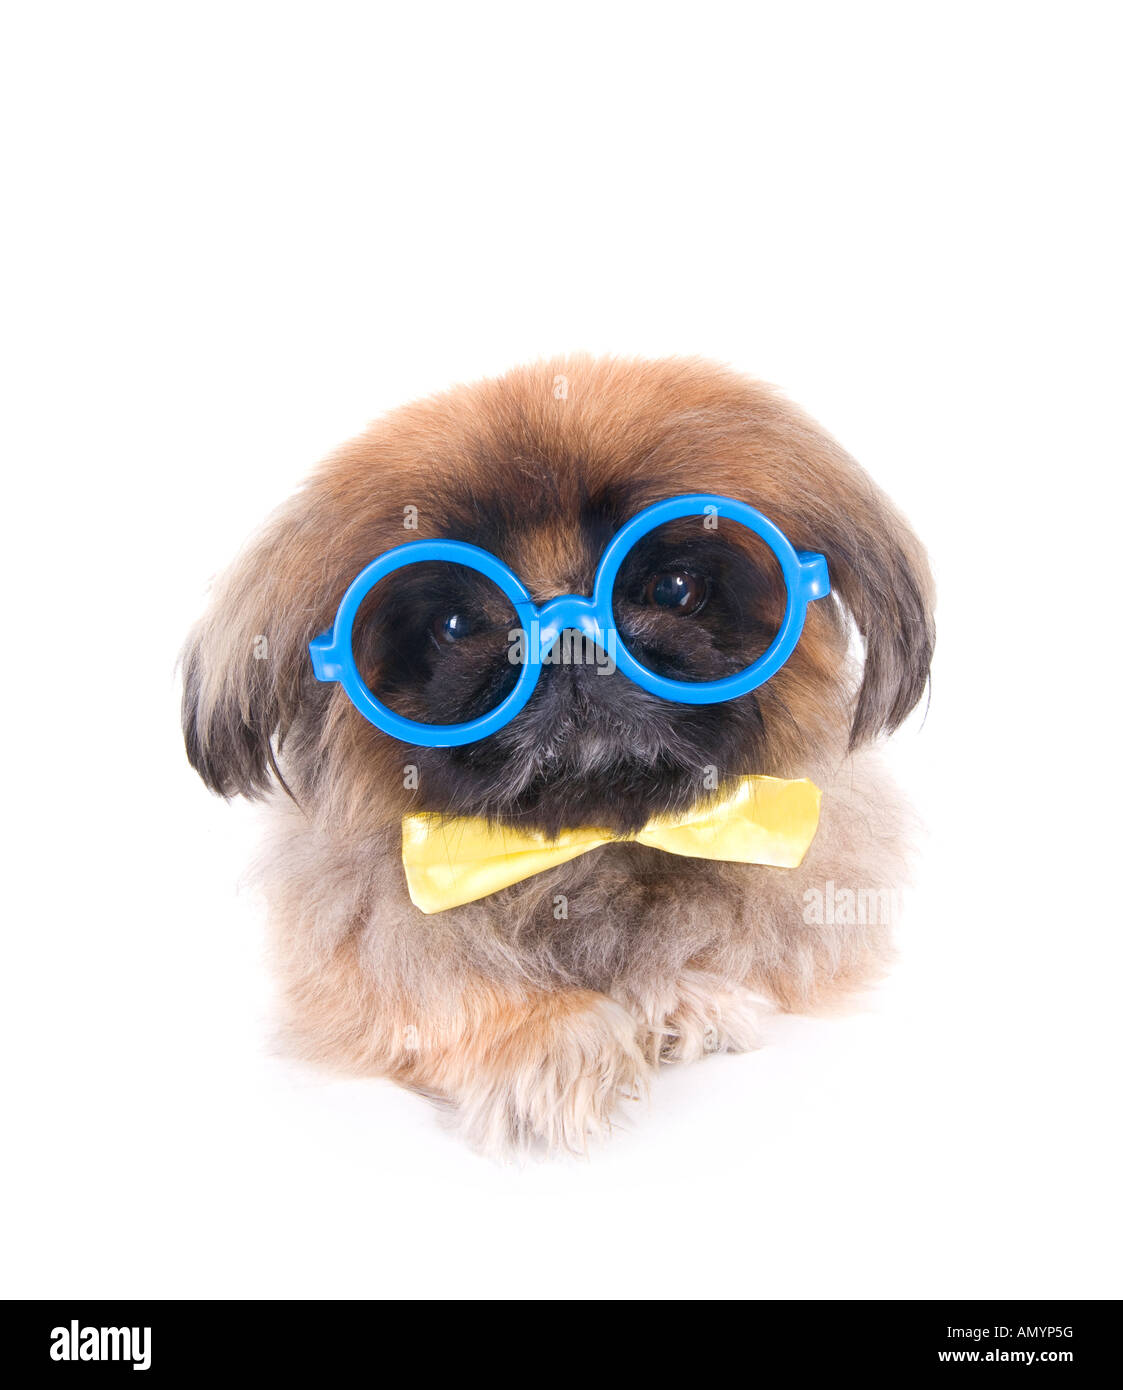 43636d6cbc44 Brown Pekingese dog dressed as a nerd with big blue glasses and yellow bow  tie isolated on white